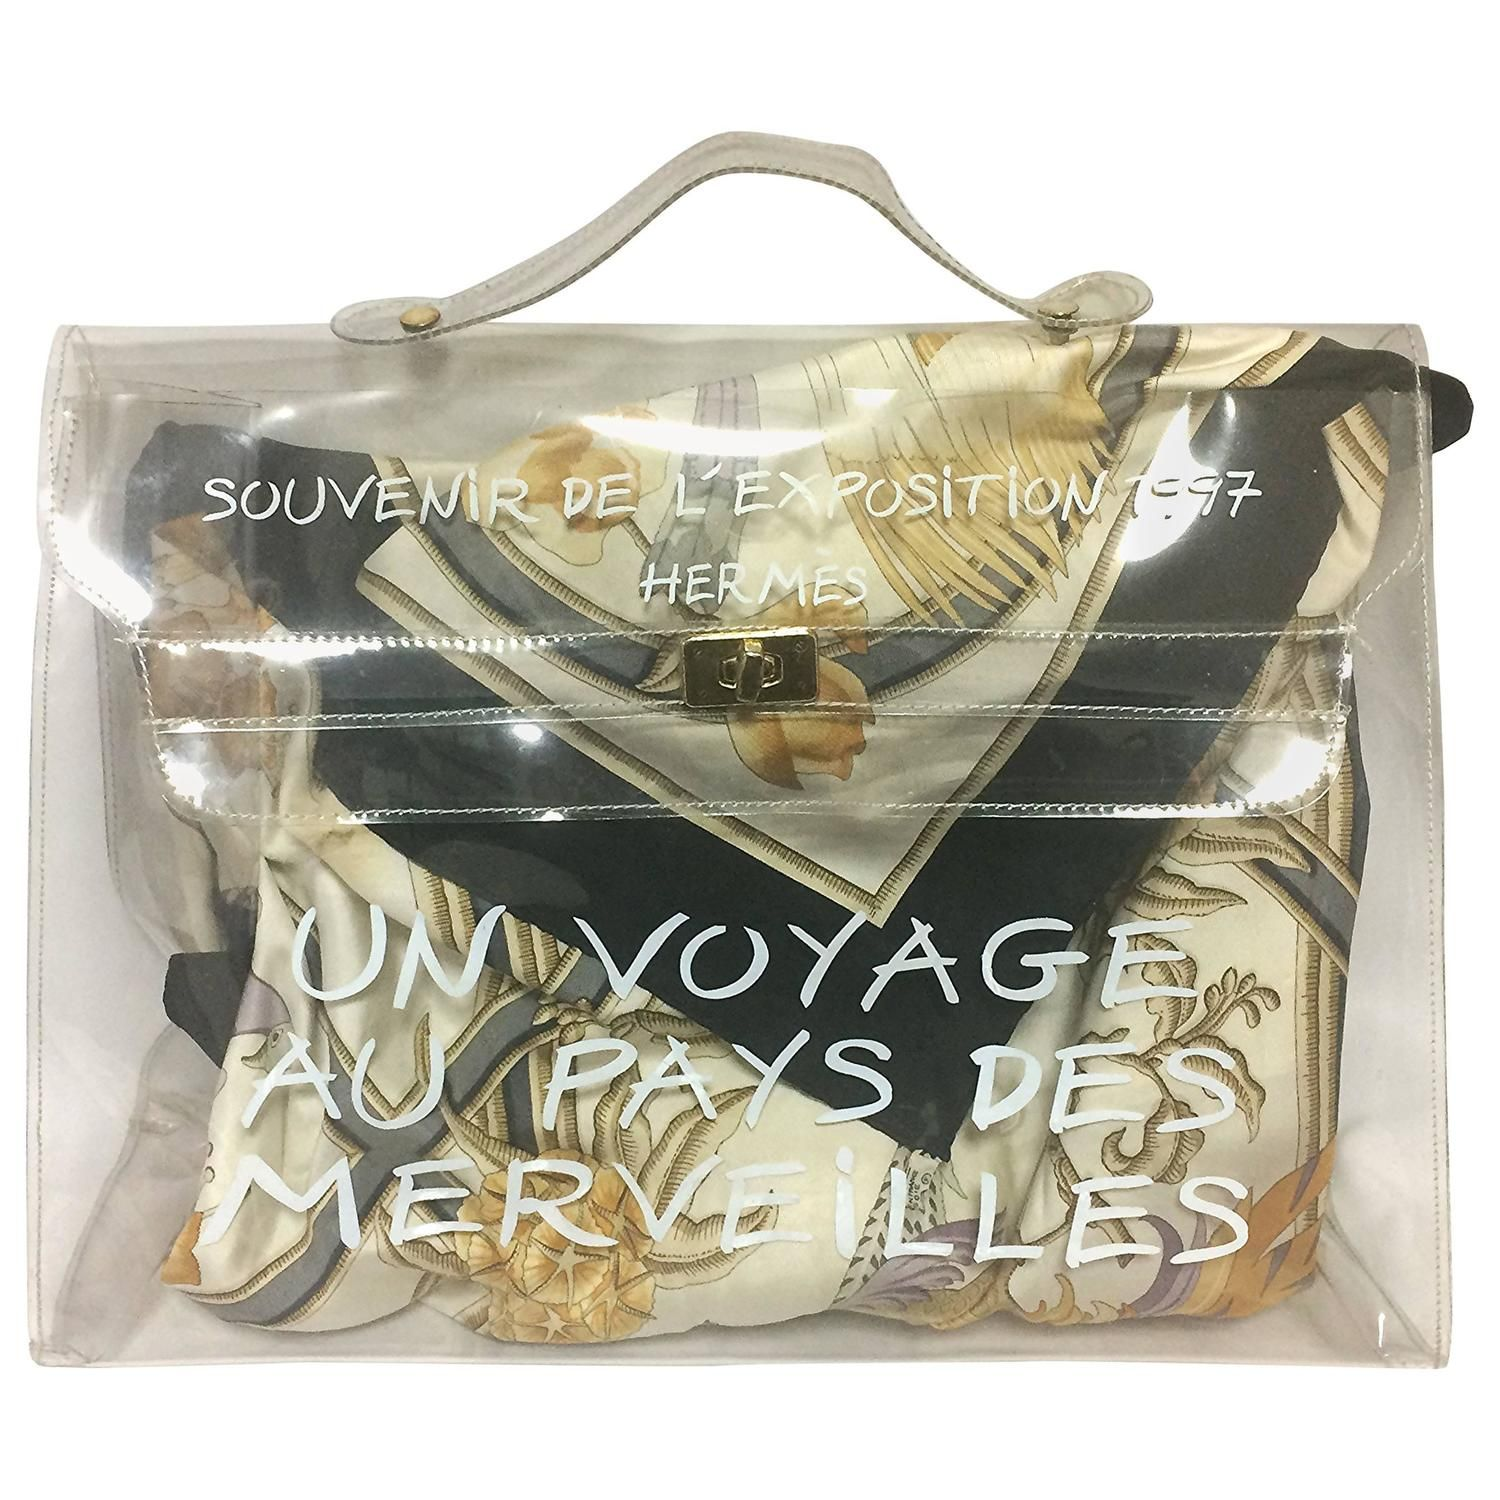 6b6b79154a71 400 Vintage Hermes a rare transparent clear vinyl Kelly bag